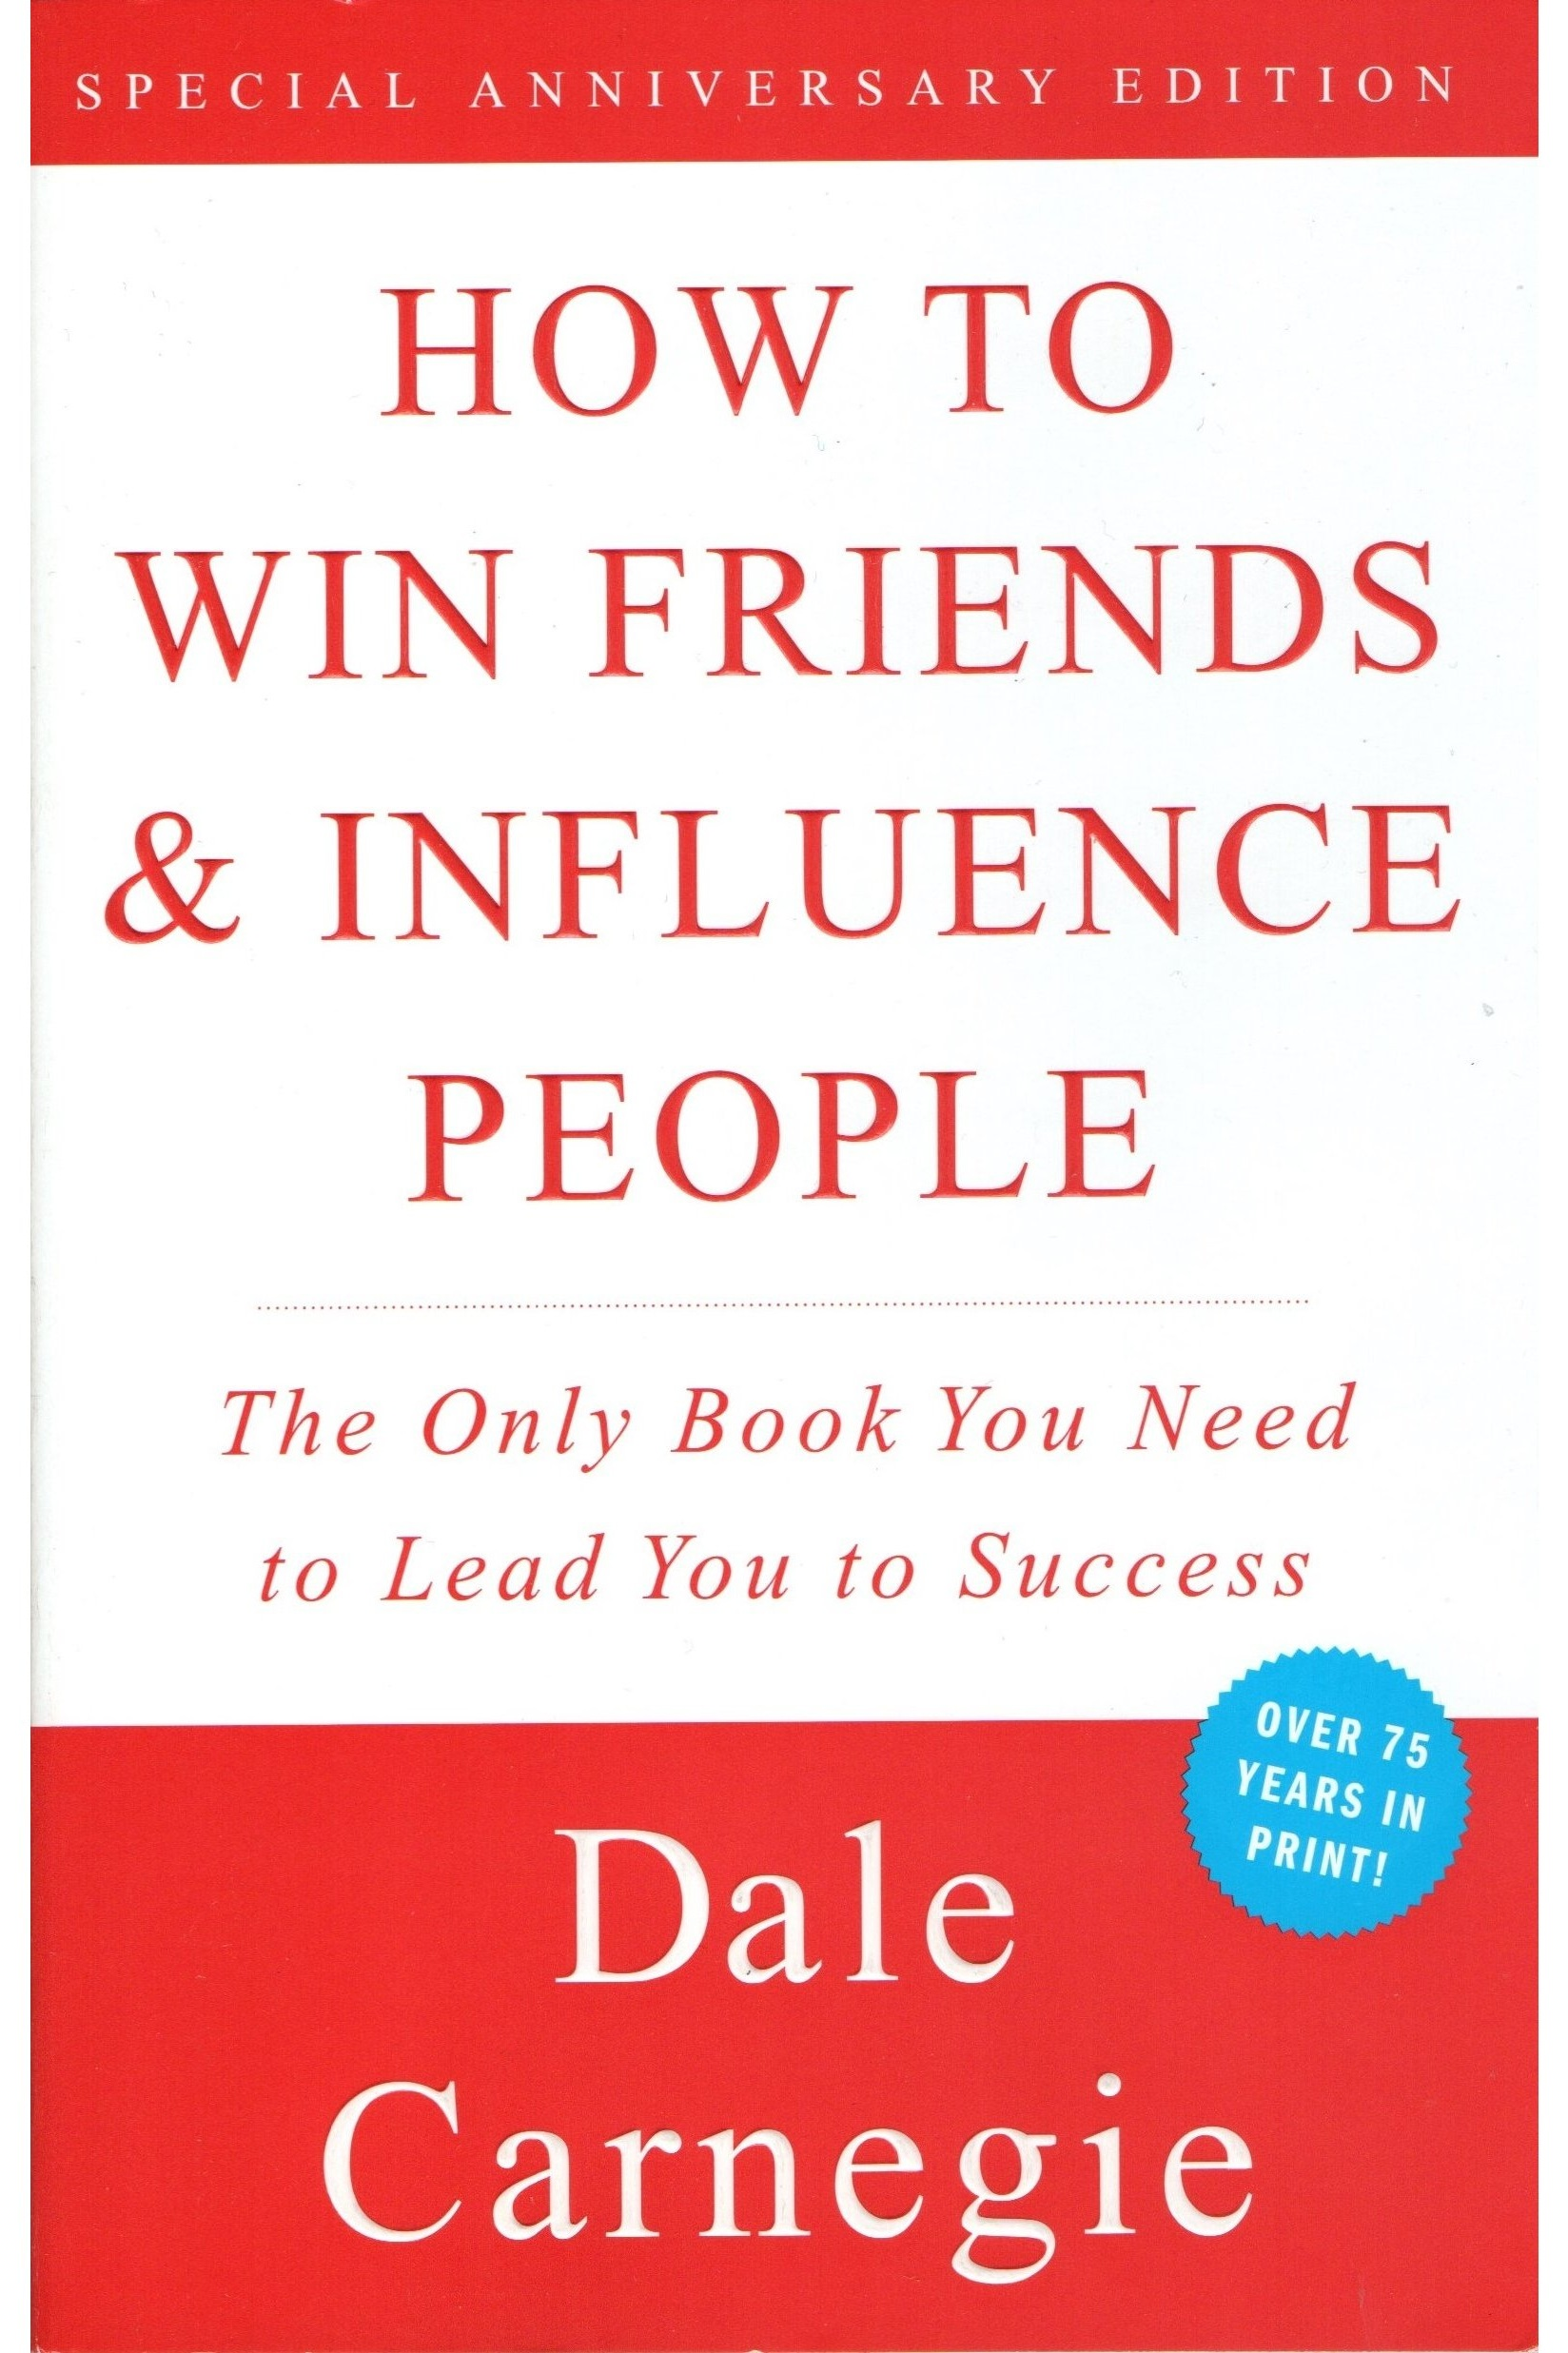 how to win friends and influence people dale carnegie.jpg